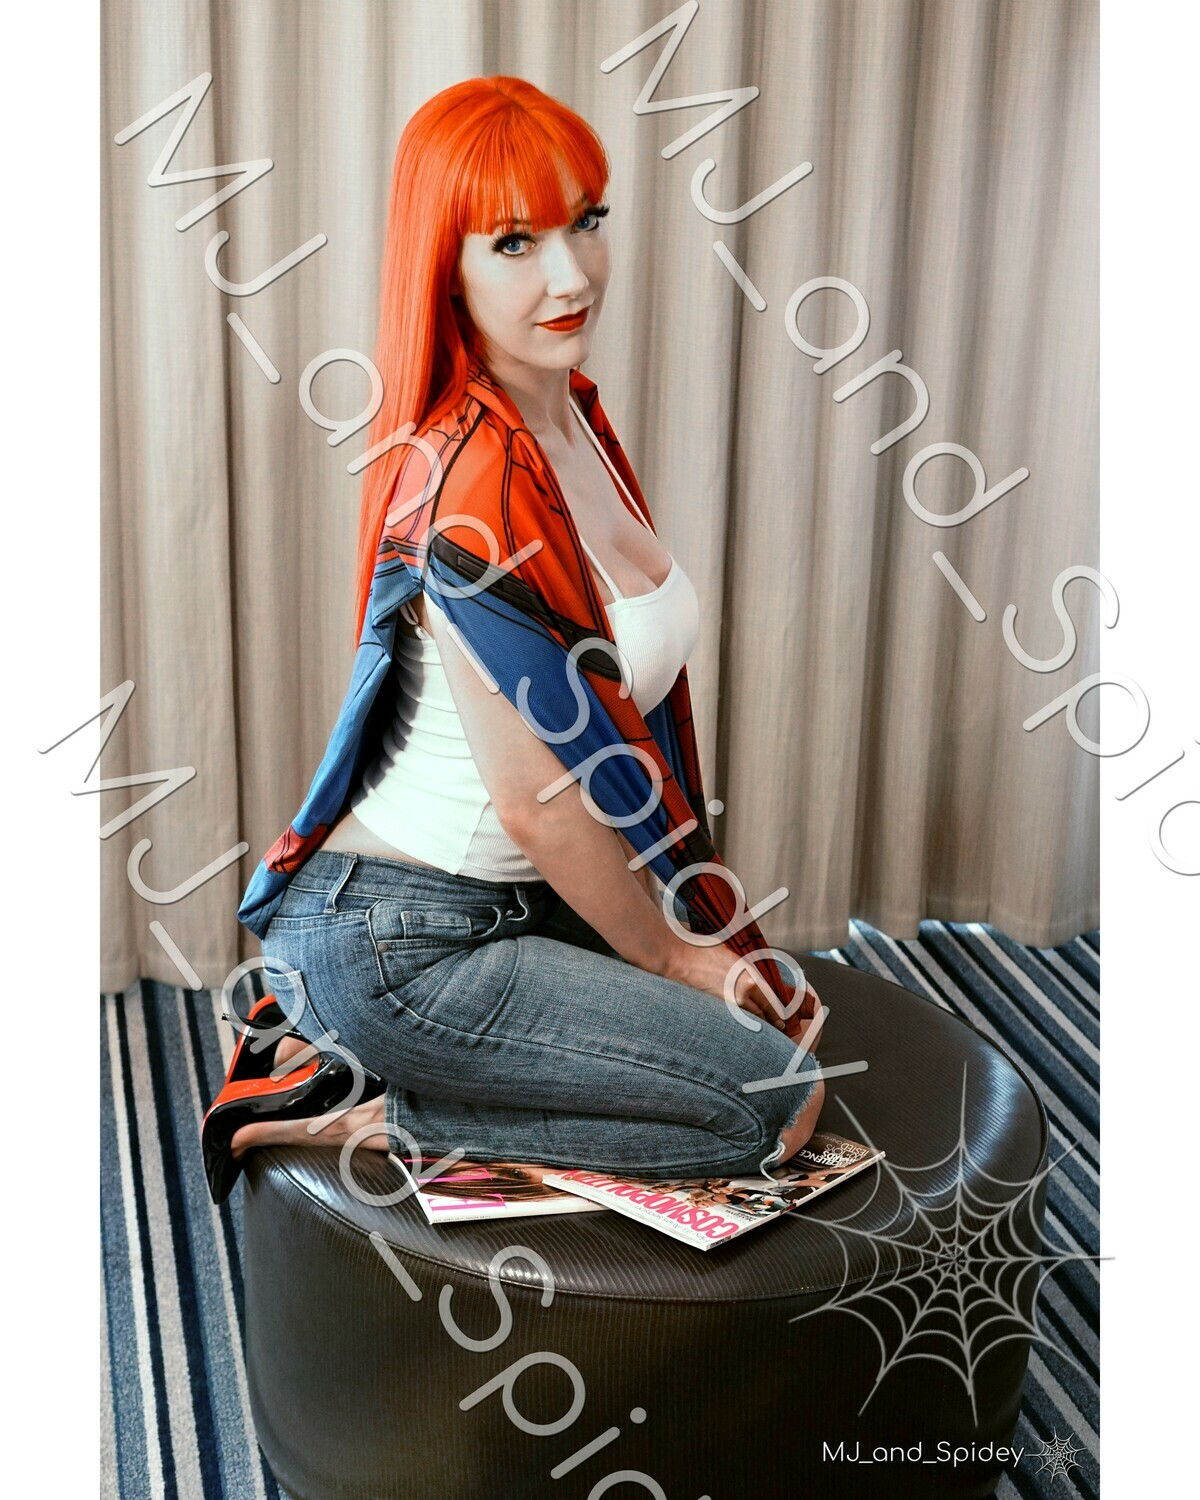 Marvel - Spider-Man - Mary Jane Watson - Campbell No. 3 - 8x10 Cosplay Print (@MJ_and_Spidey, MJ and Spidey, Comics)